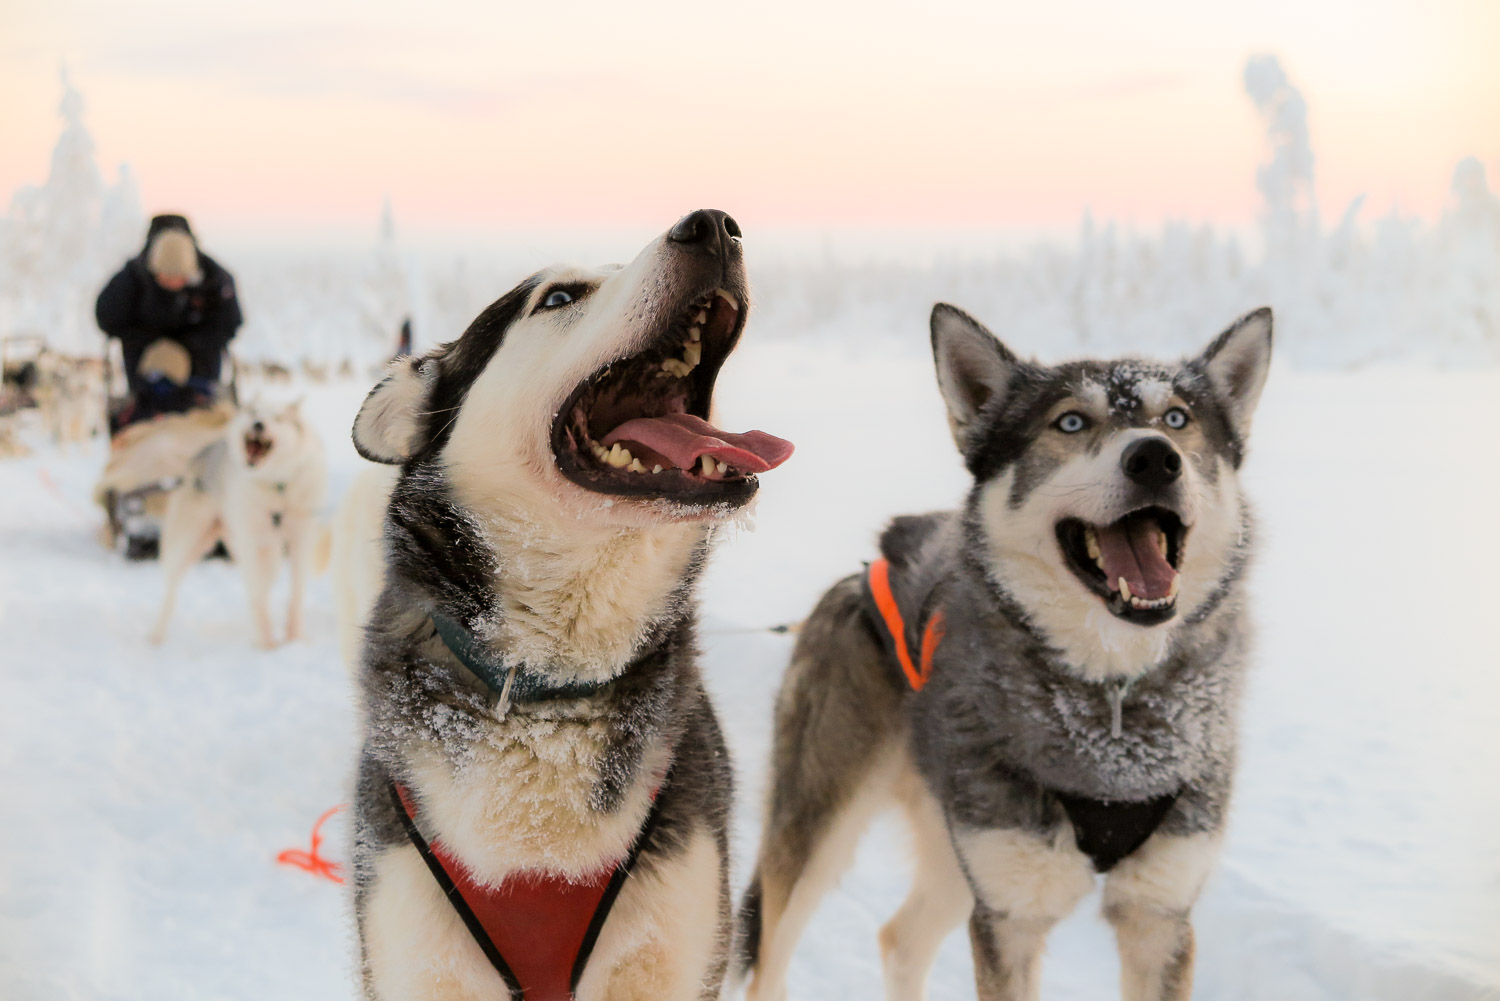 Huskies in Riisitunturi National Park in Finland